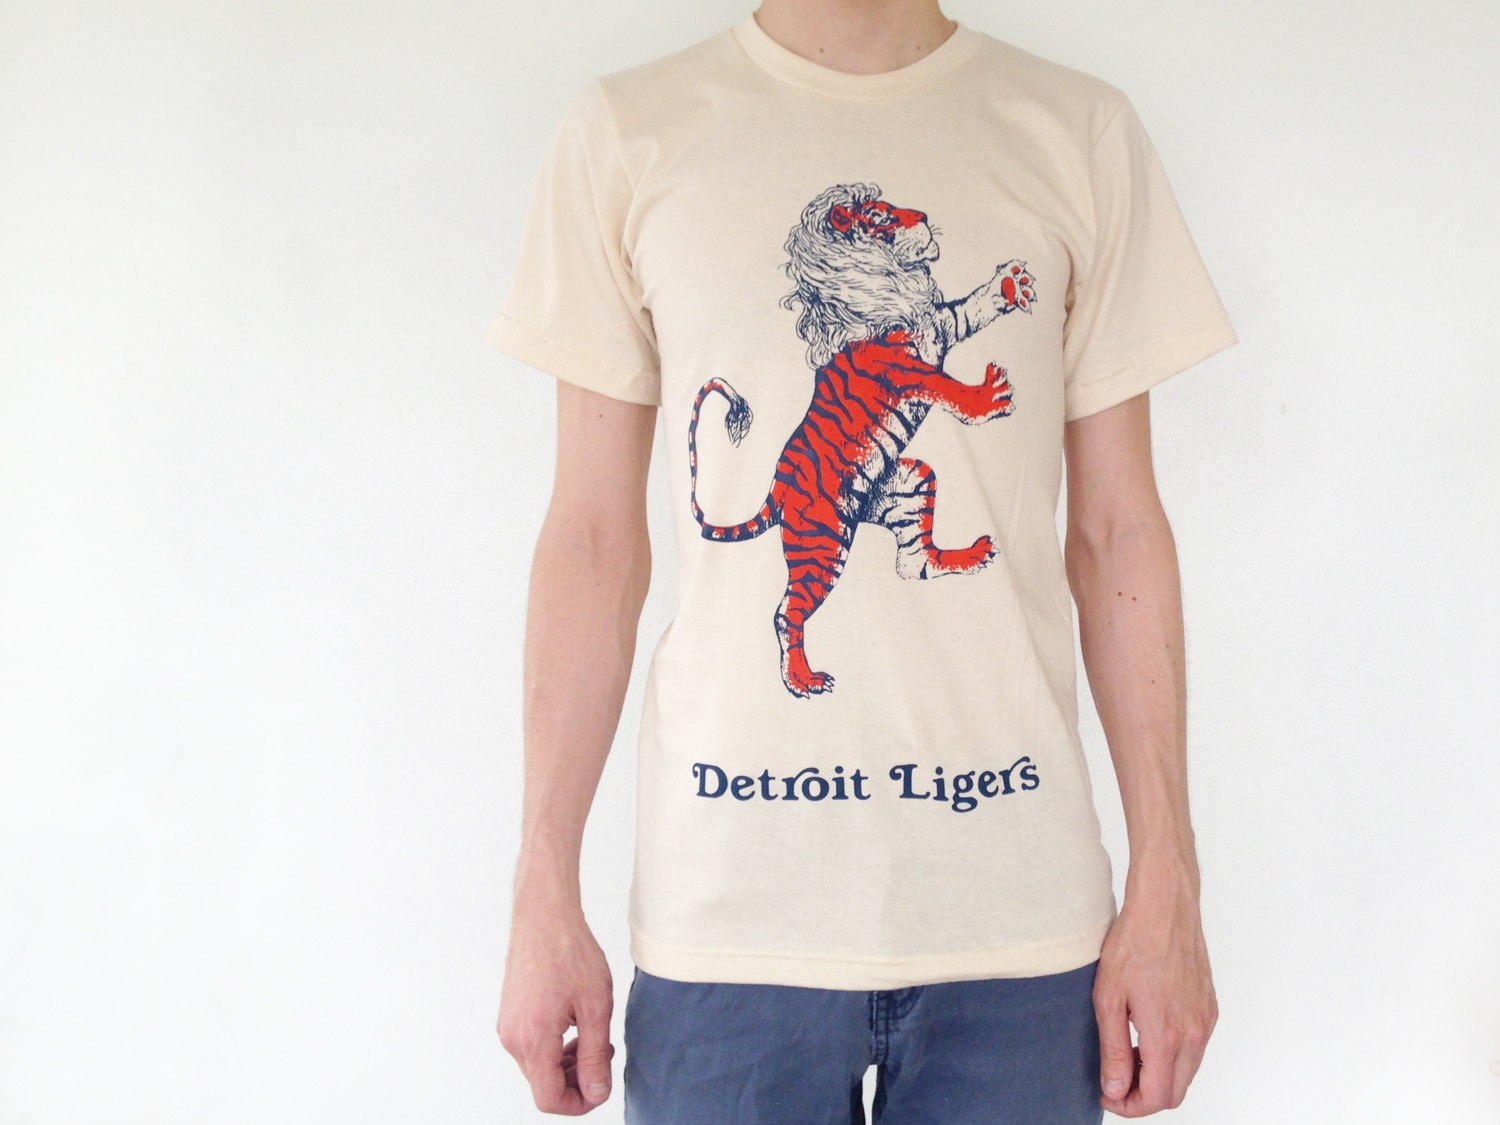 Unique detroit tigers shirt related items | Etsy